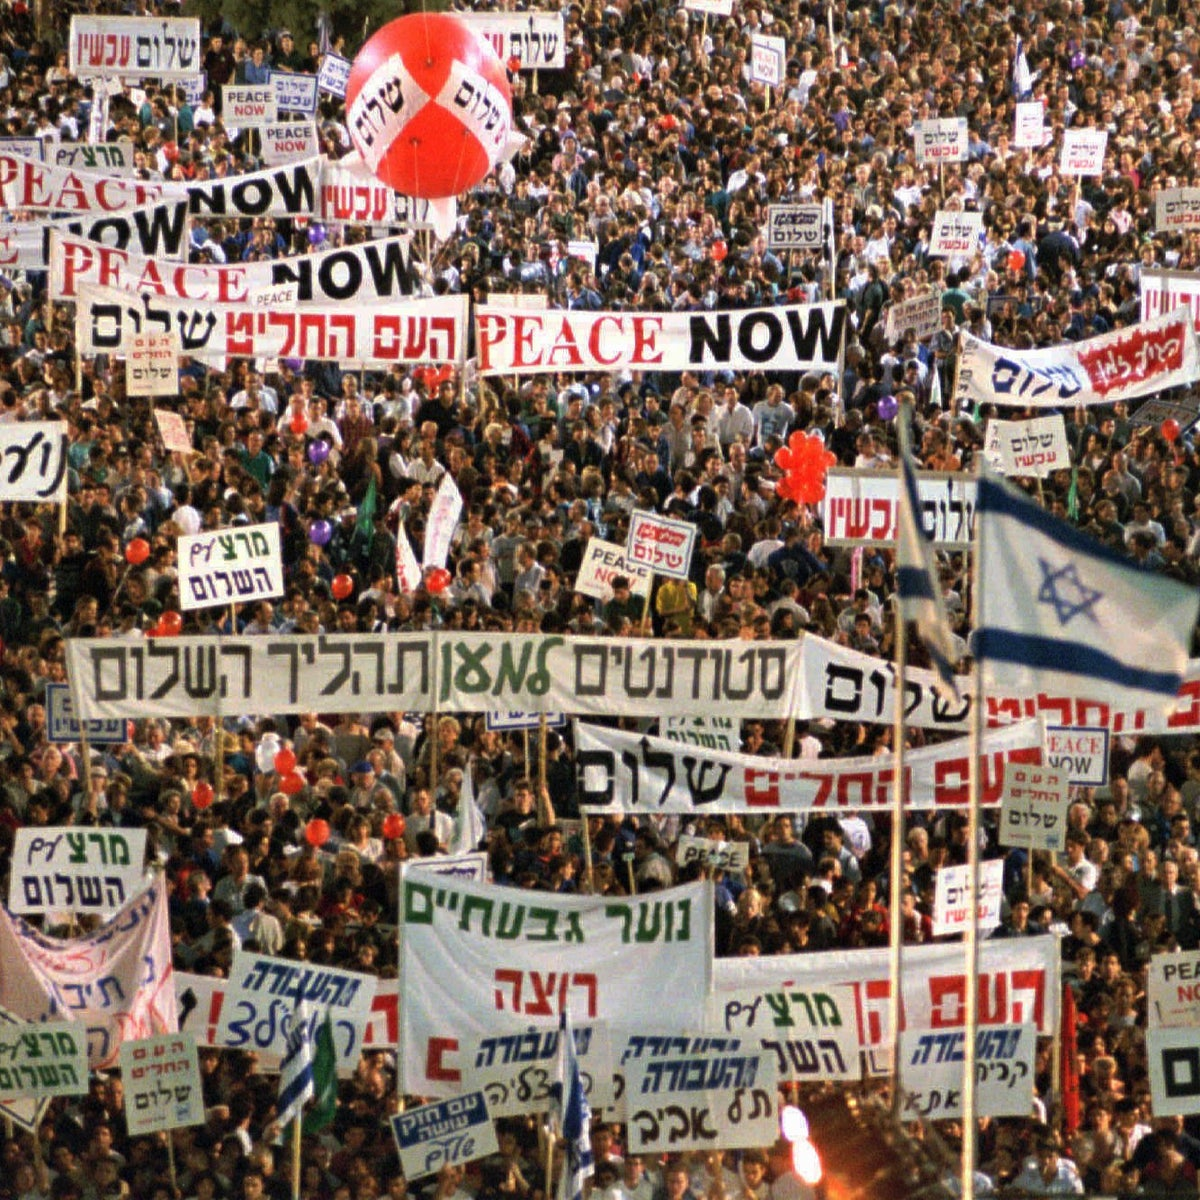 """The """"Yes to Peace, No to Violence"""" rally in Tel Aviv at which then-Prime Minister Yitzhak Rabin spoke before being assassinated by a right-wing extremist, November 4, 1995."""